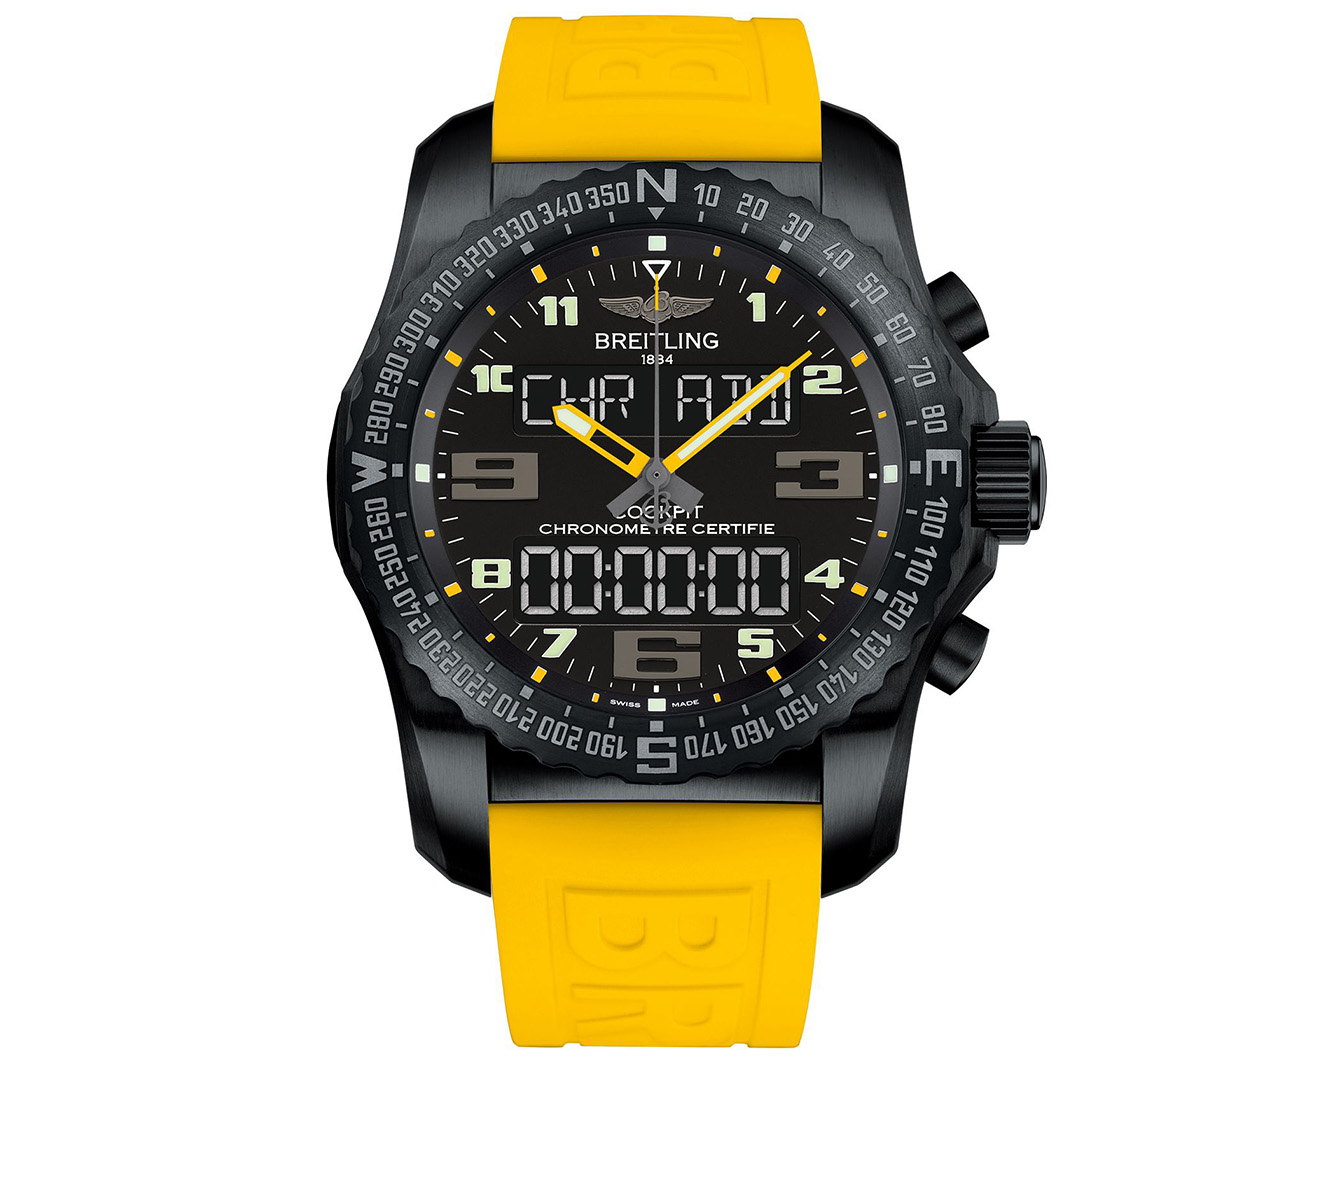 Часы Cockpit B50 Night Mission Breitling Professional VB5010A4/BD41/242S - фото 1 – Mercury